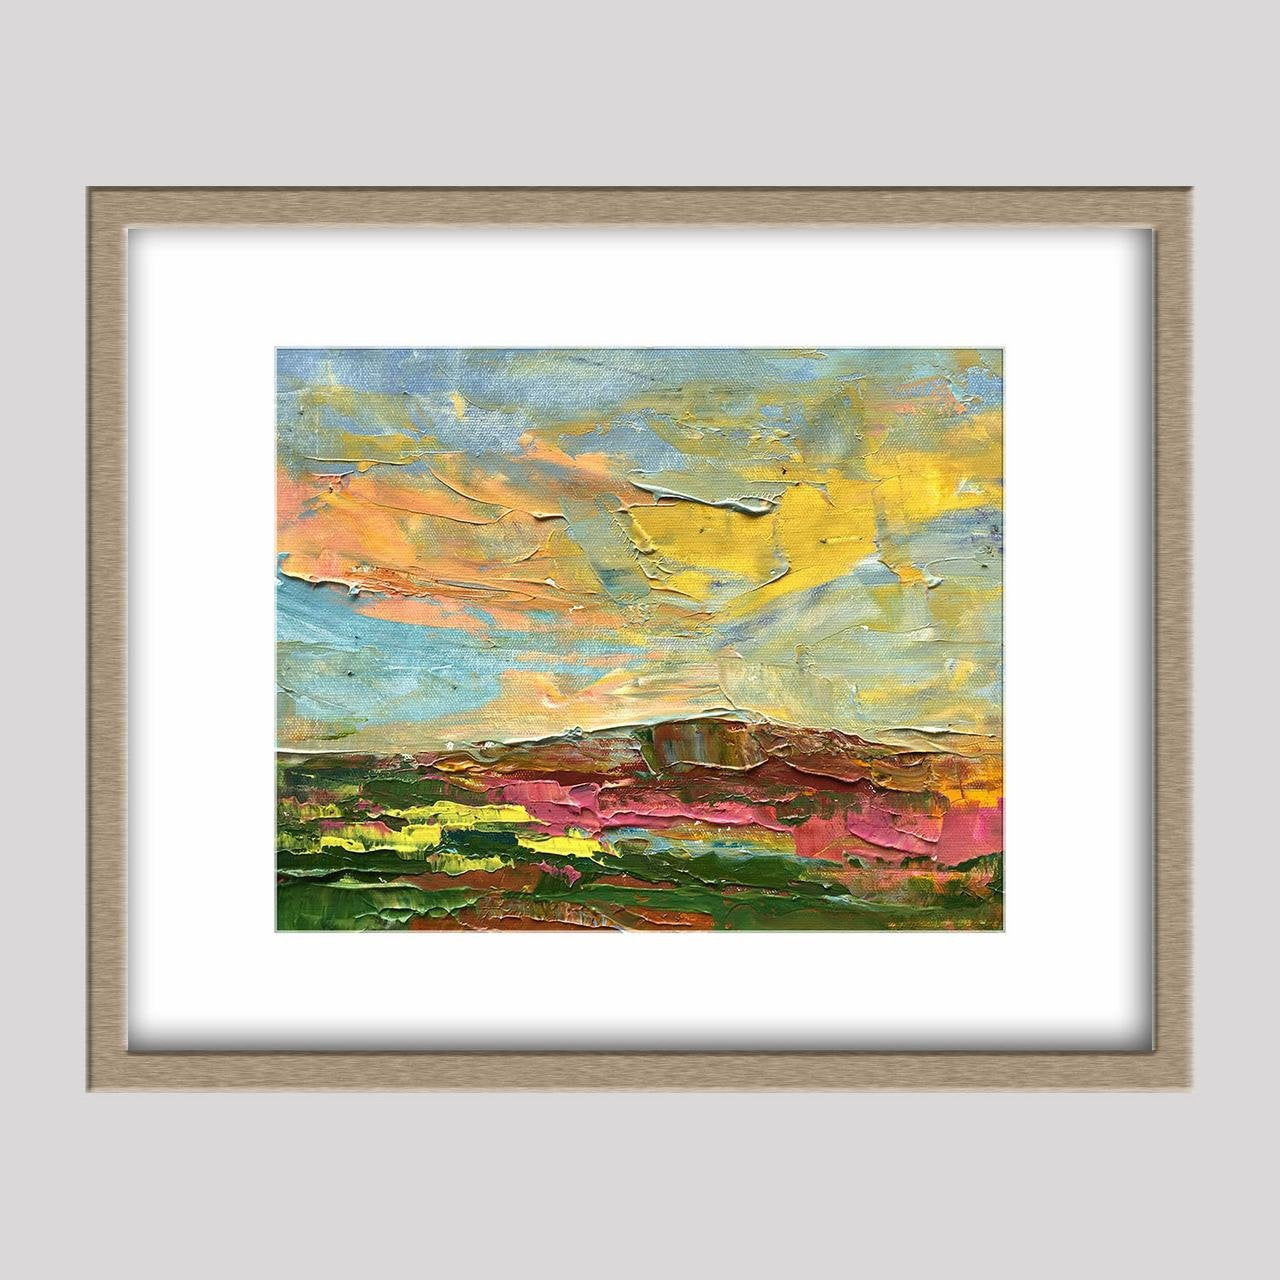 Abstract Oil Painting, Original Landscape Oil Paintings, Living Room Decor, Abstract Canvas Art, Original Abstract Art, Small Abstract Art